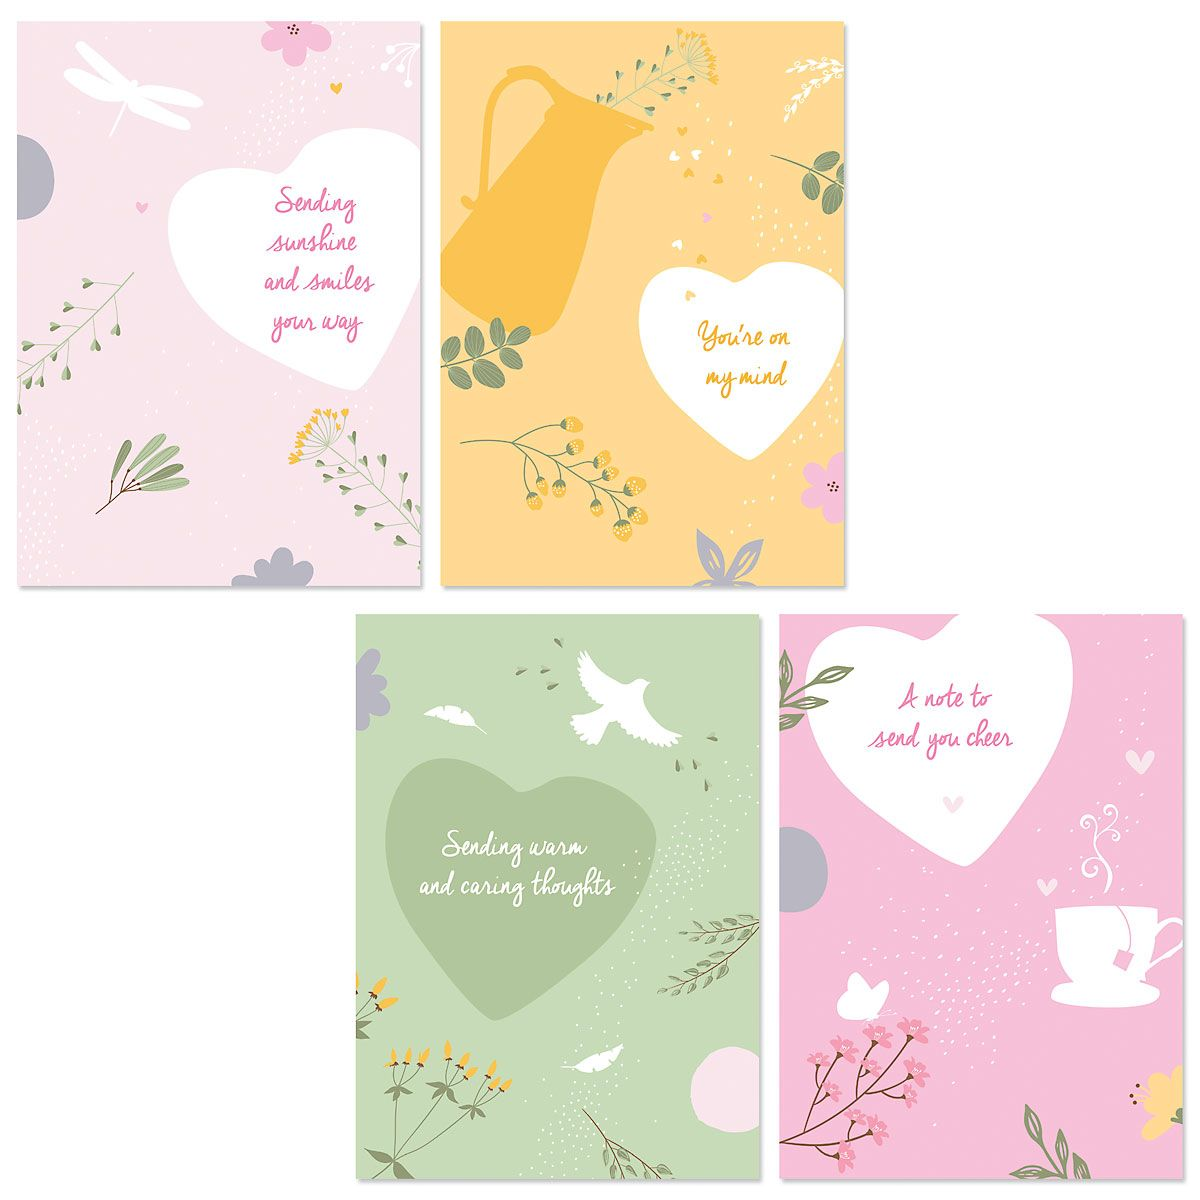 Sunshine and Smiles Thinking of You Cards and Seals